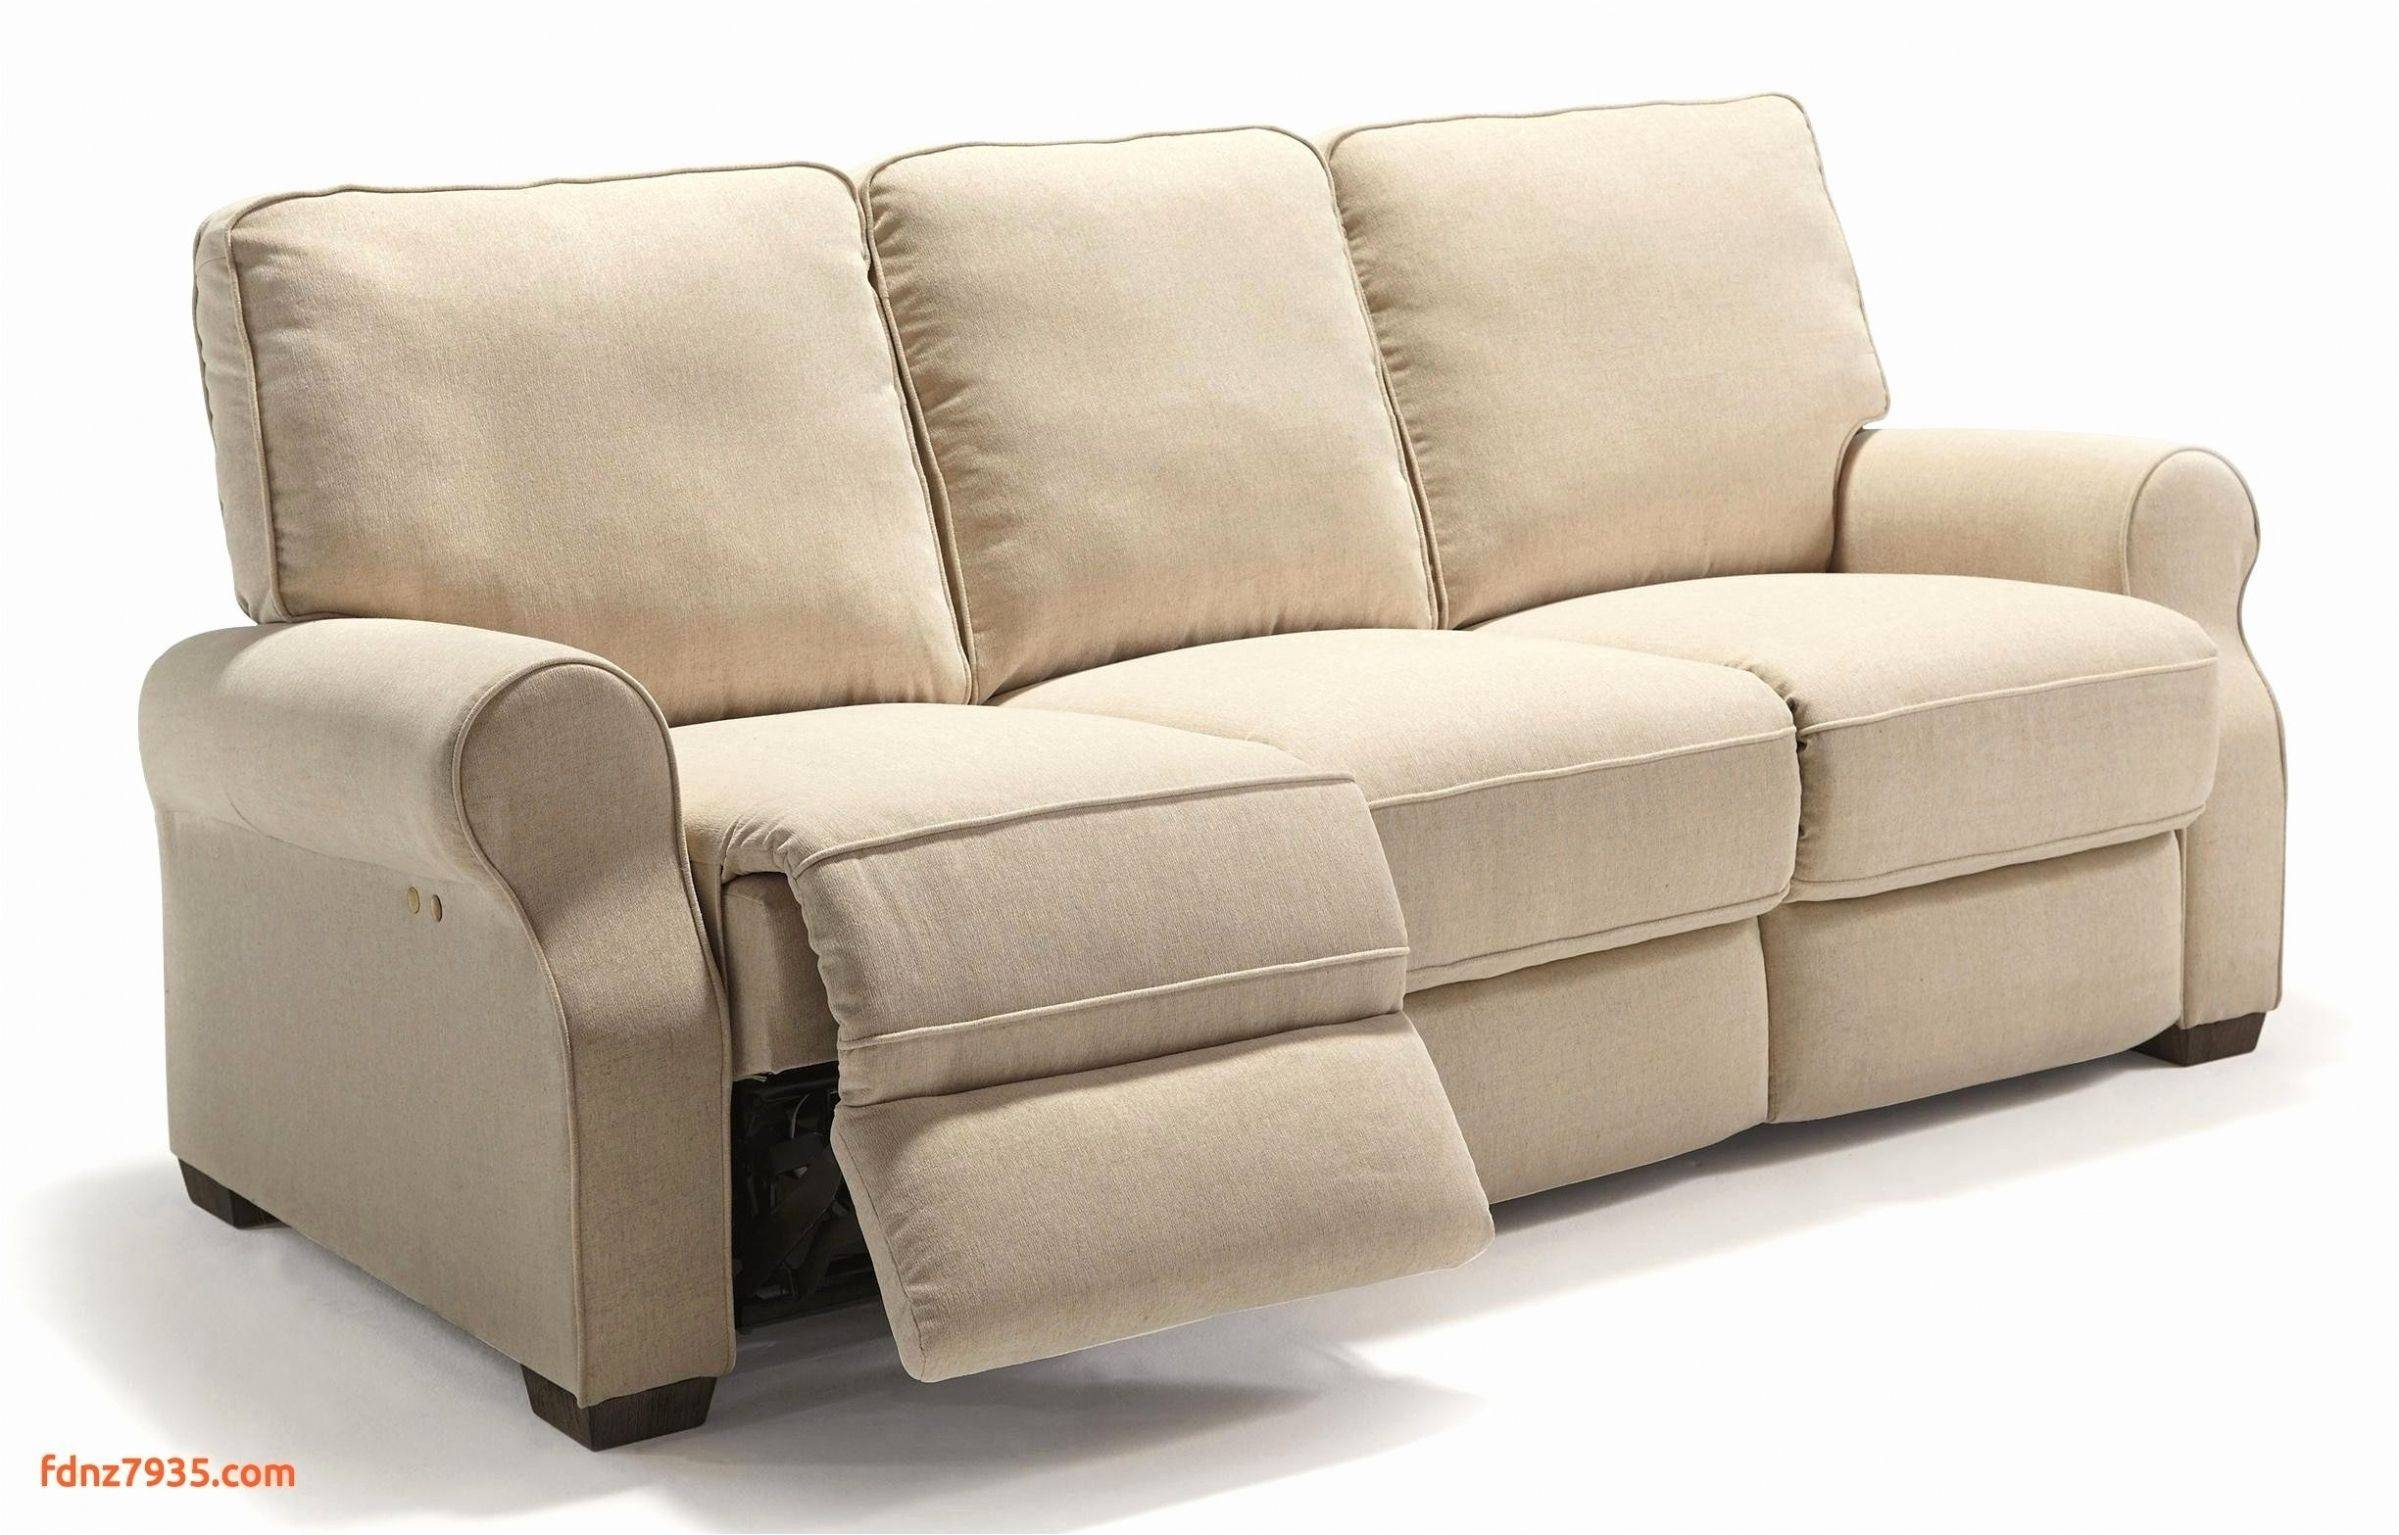 Discount Furniture Best Of Pin On the Best sofa Models